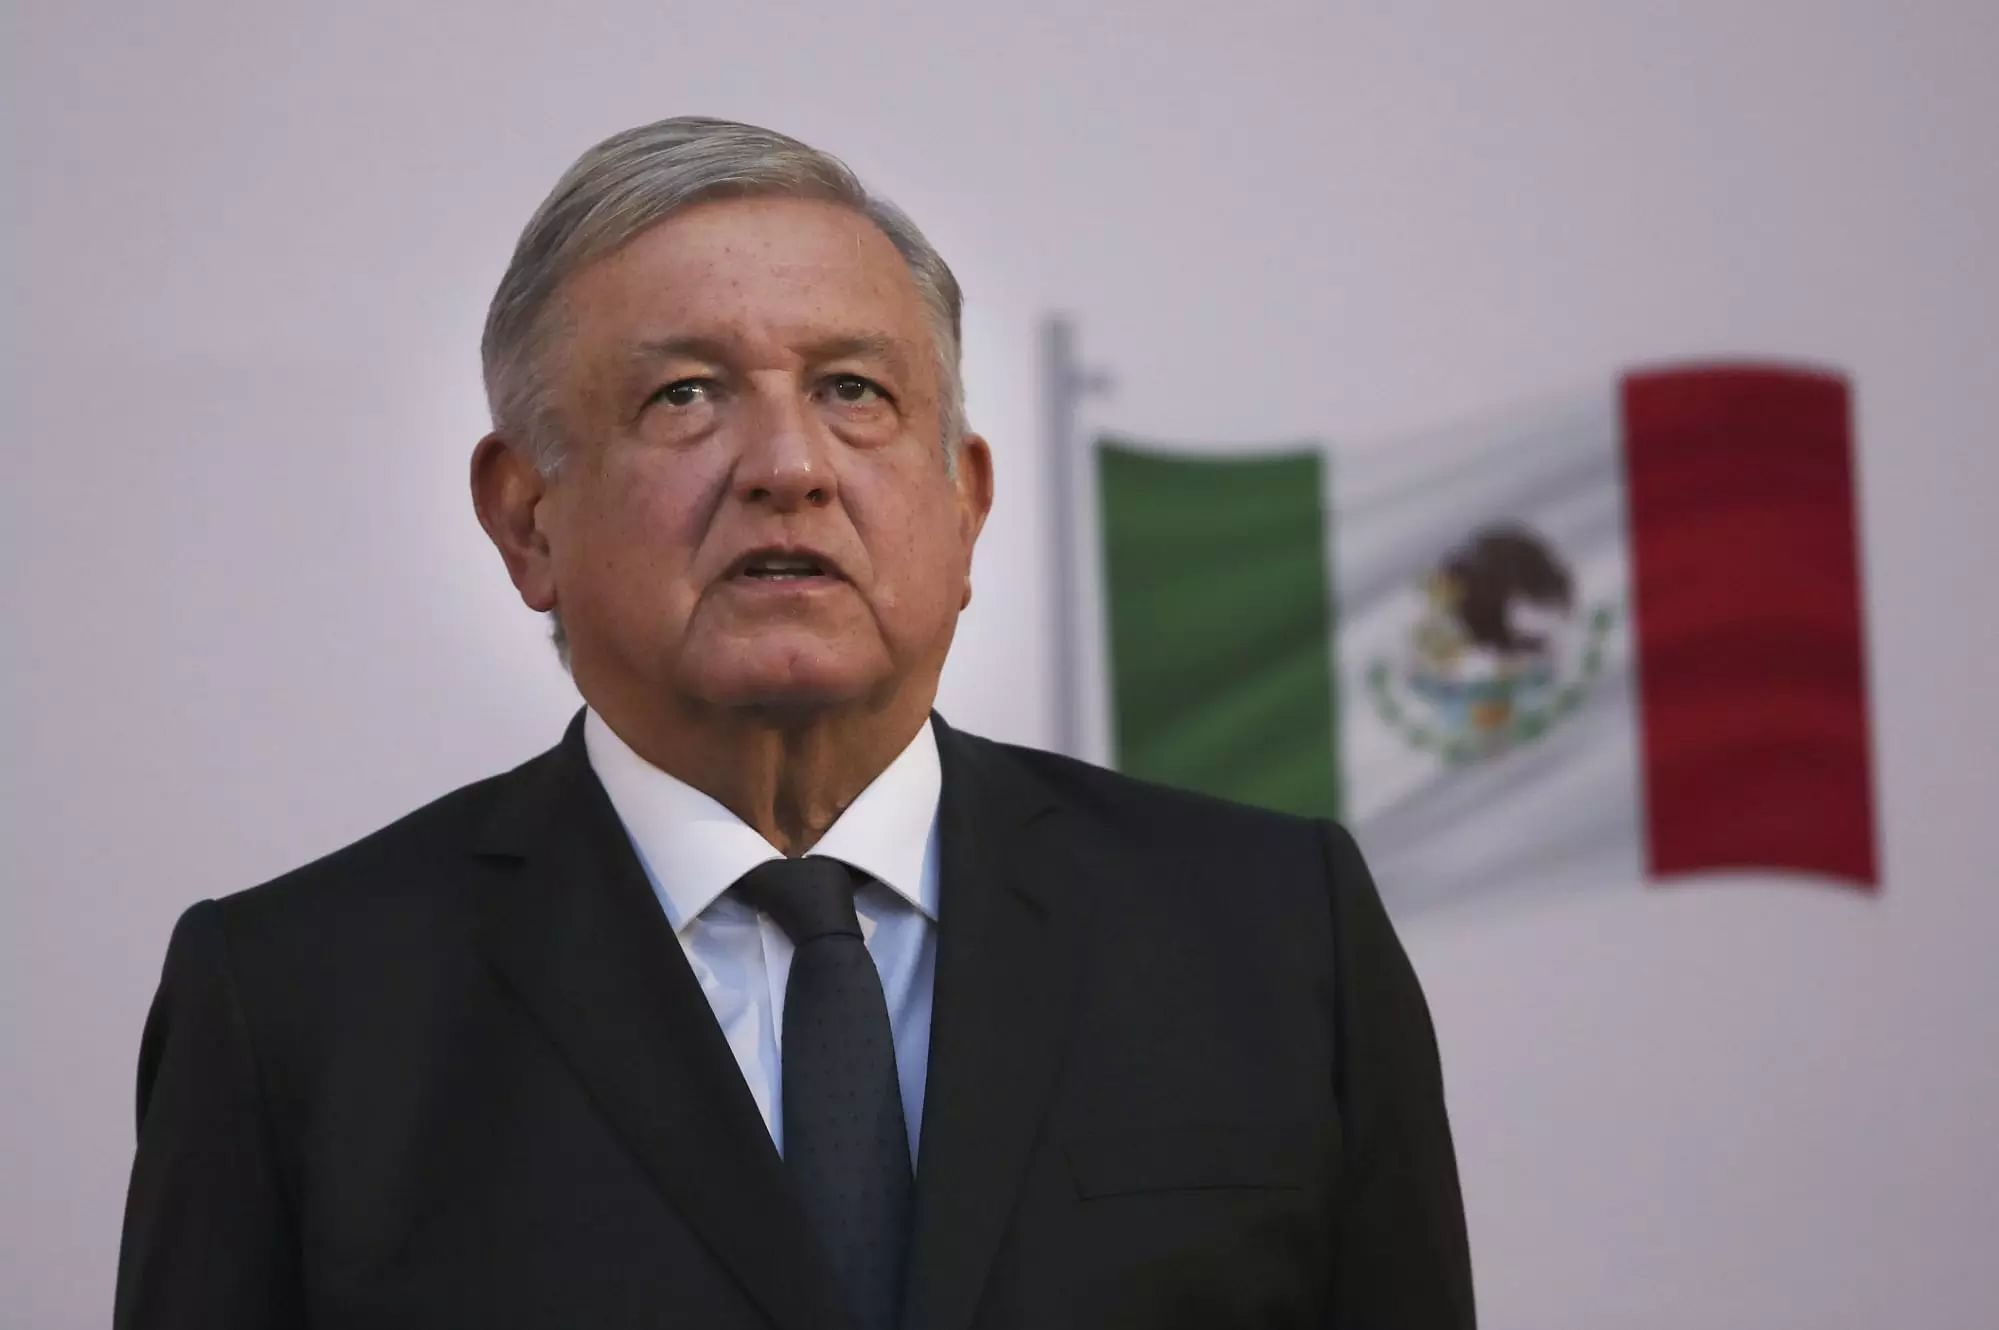 Mexicos President Andres Manuel Lopez Obrador welcomes US cancellation